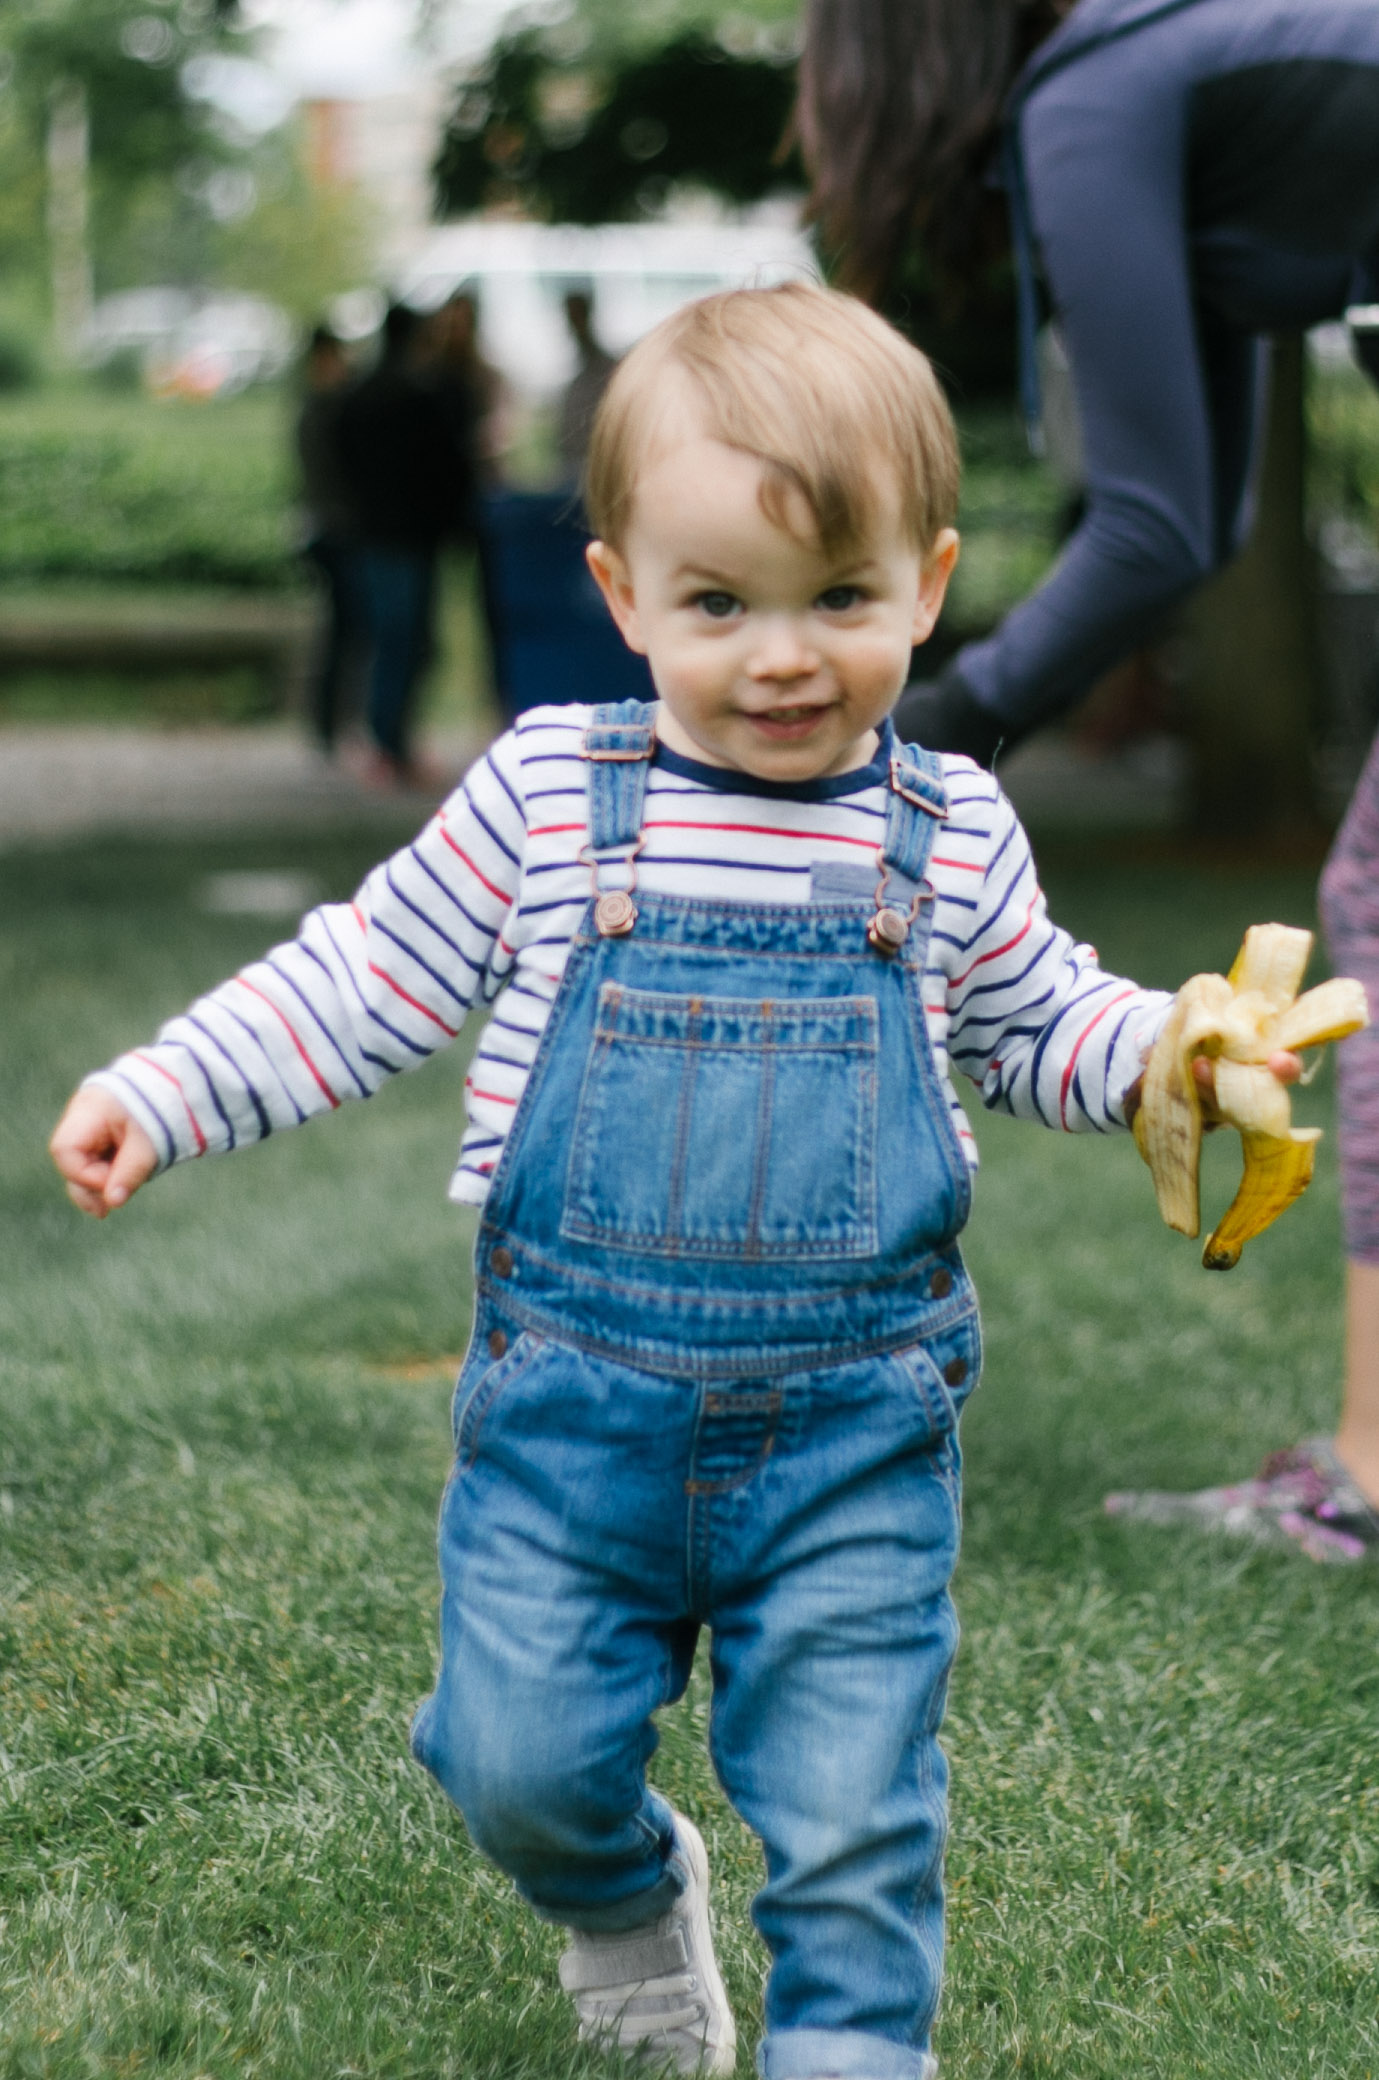 Fine art portraits of my child at the Redmond Farmer Market | Chelsea Macor Photography Seattle and Bellevue Family Photography-5.jpg